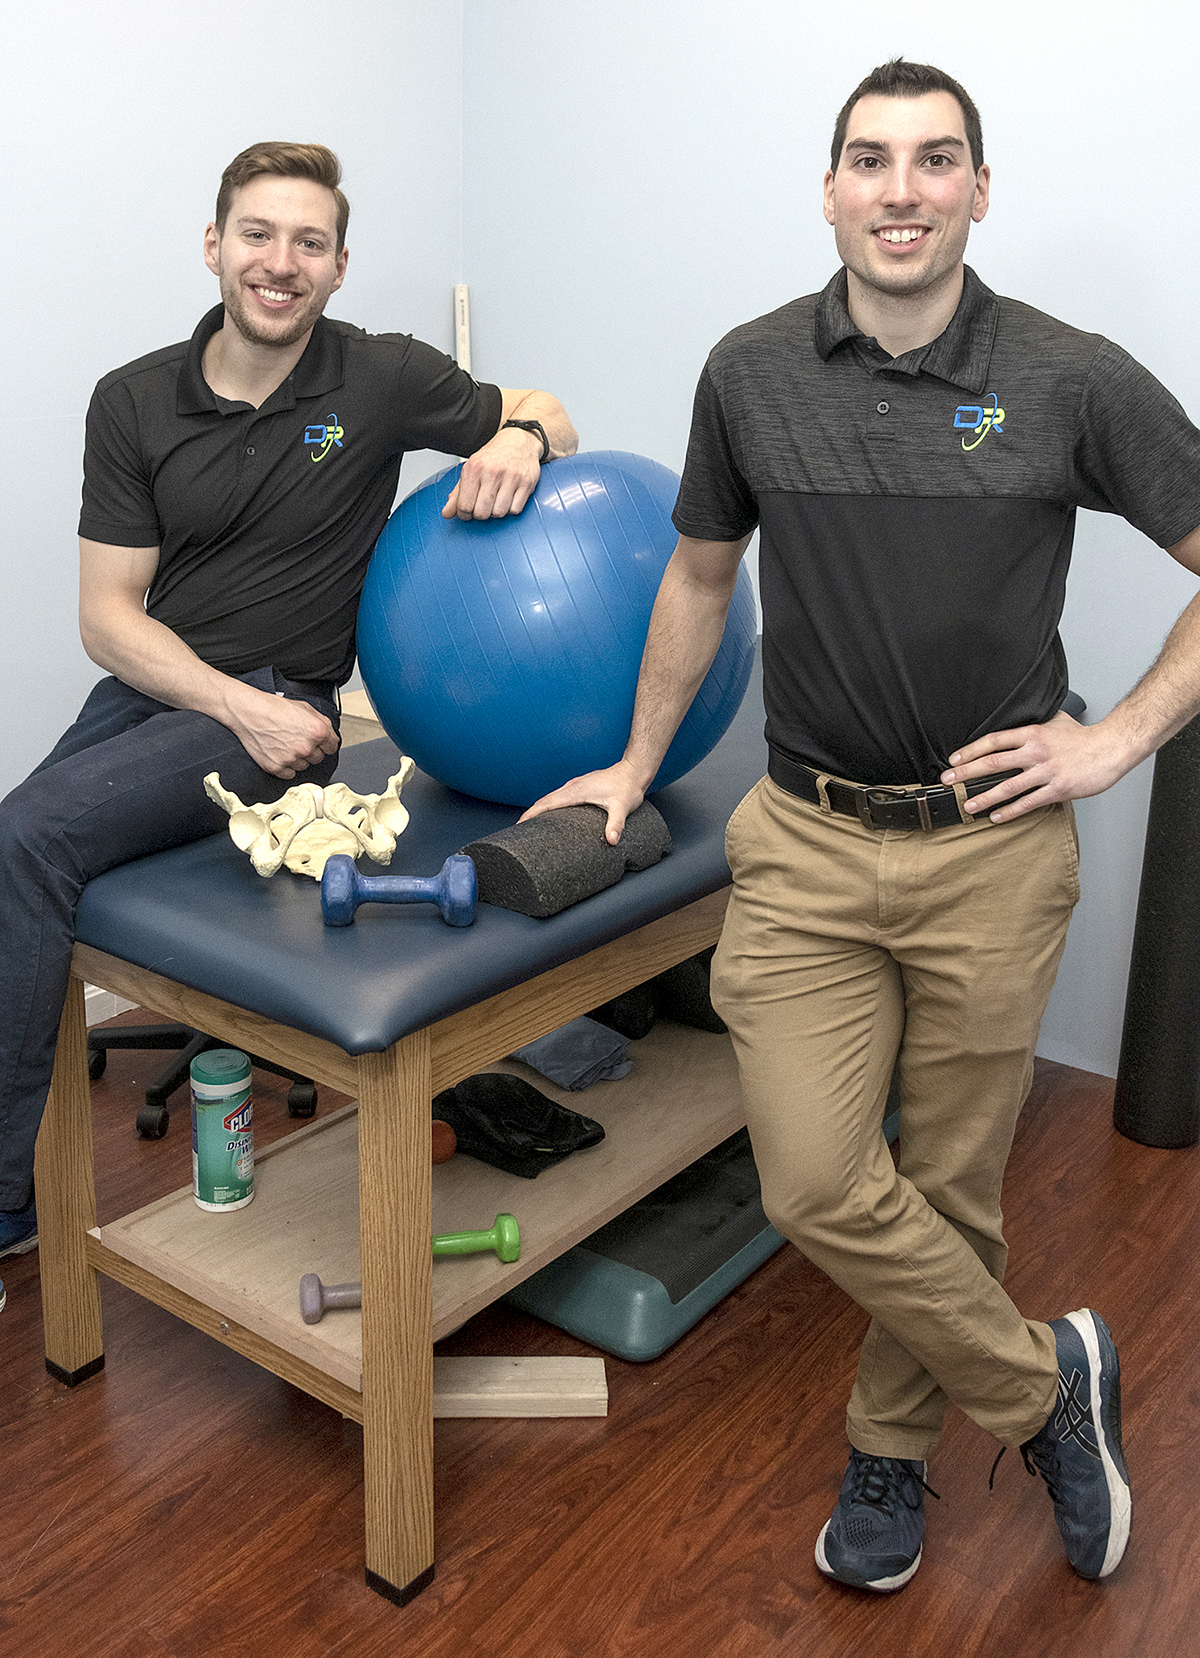 They're the dynamic duo of physical therapy - Providence ...